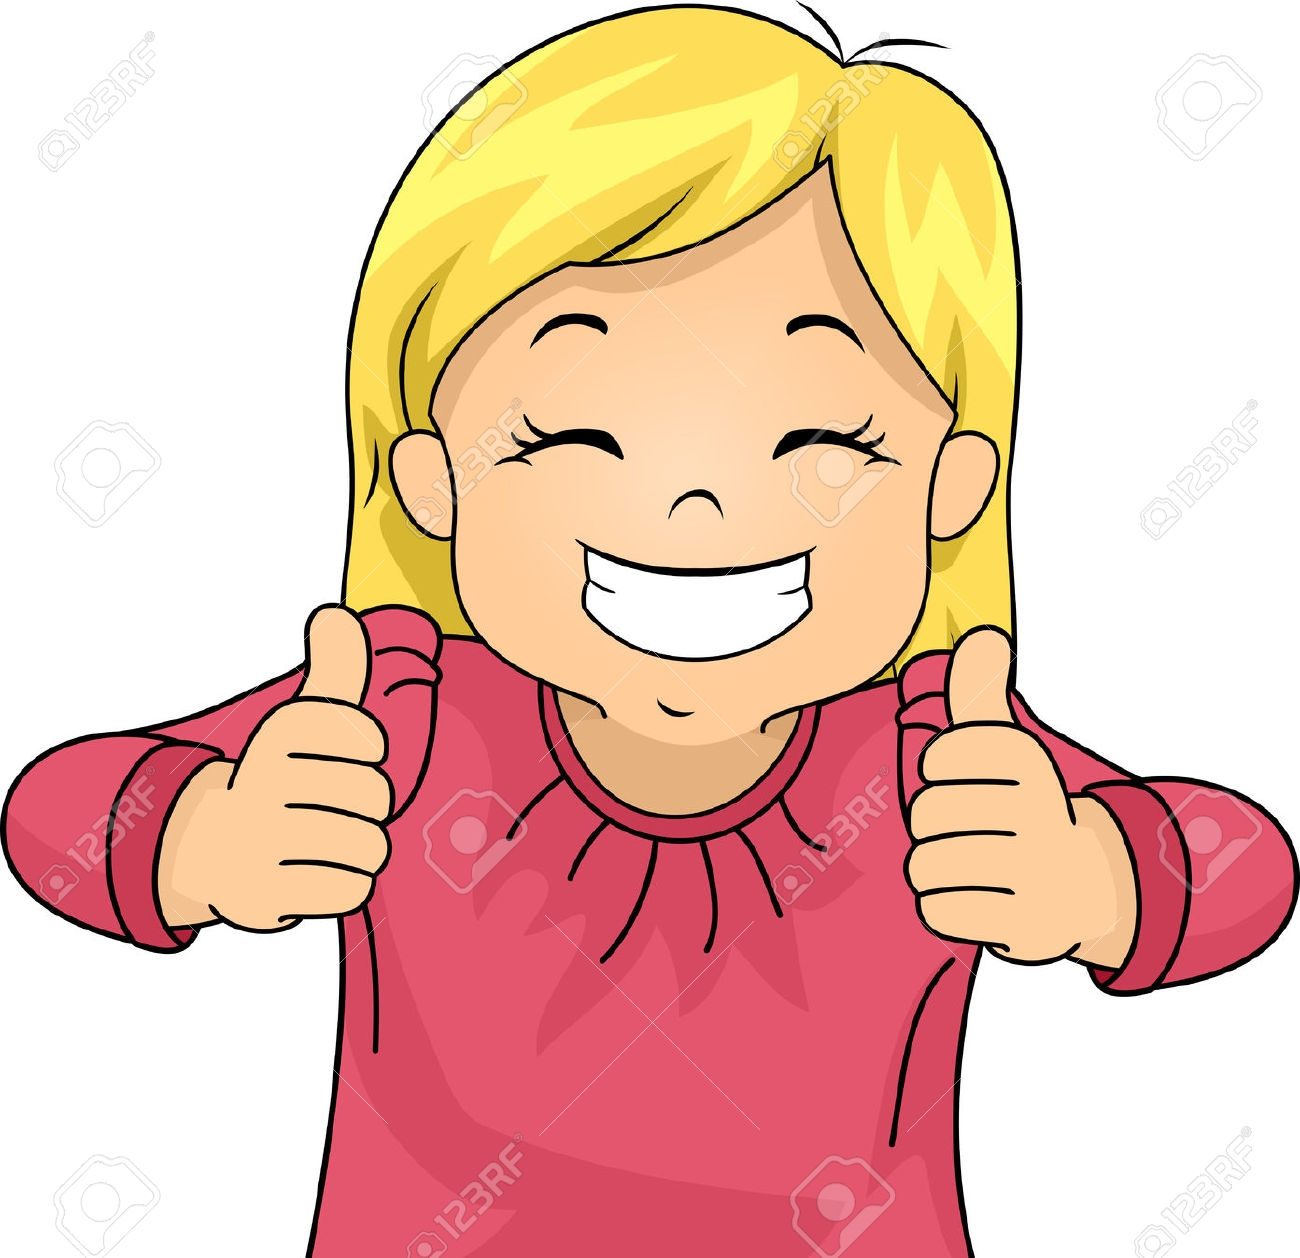 Girl giving thumbs up clipart picture royalty free library Girl giving thumbs up clipart - ClipartFest picture royalty free library